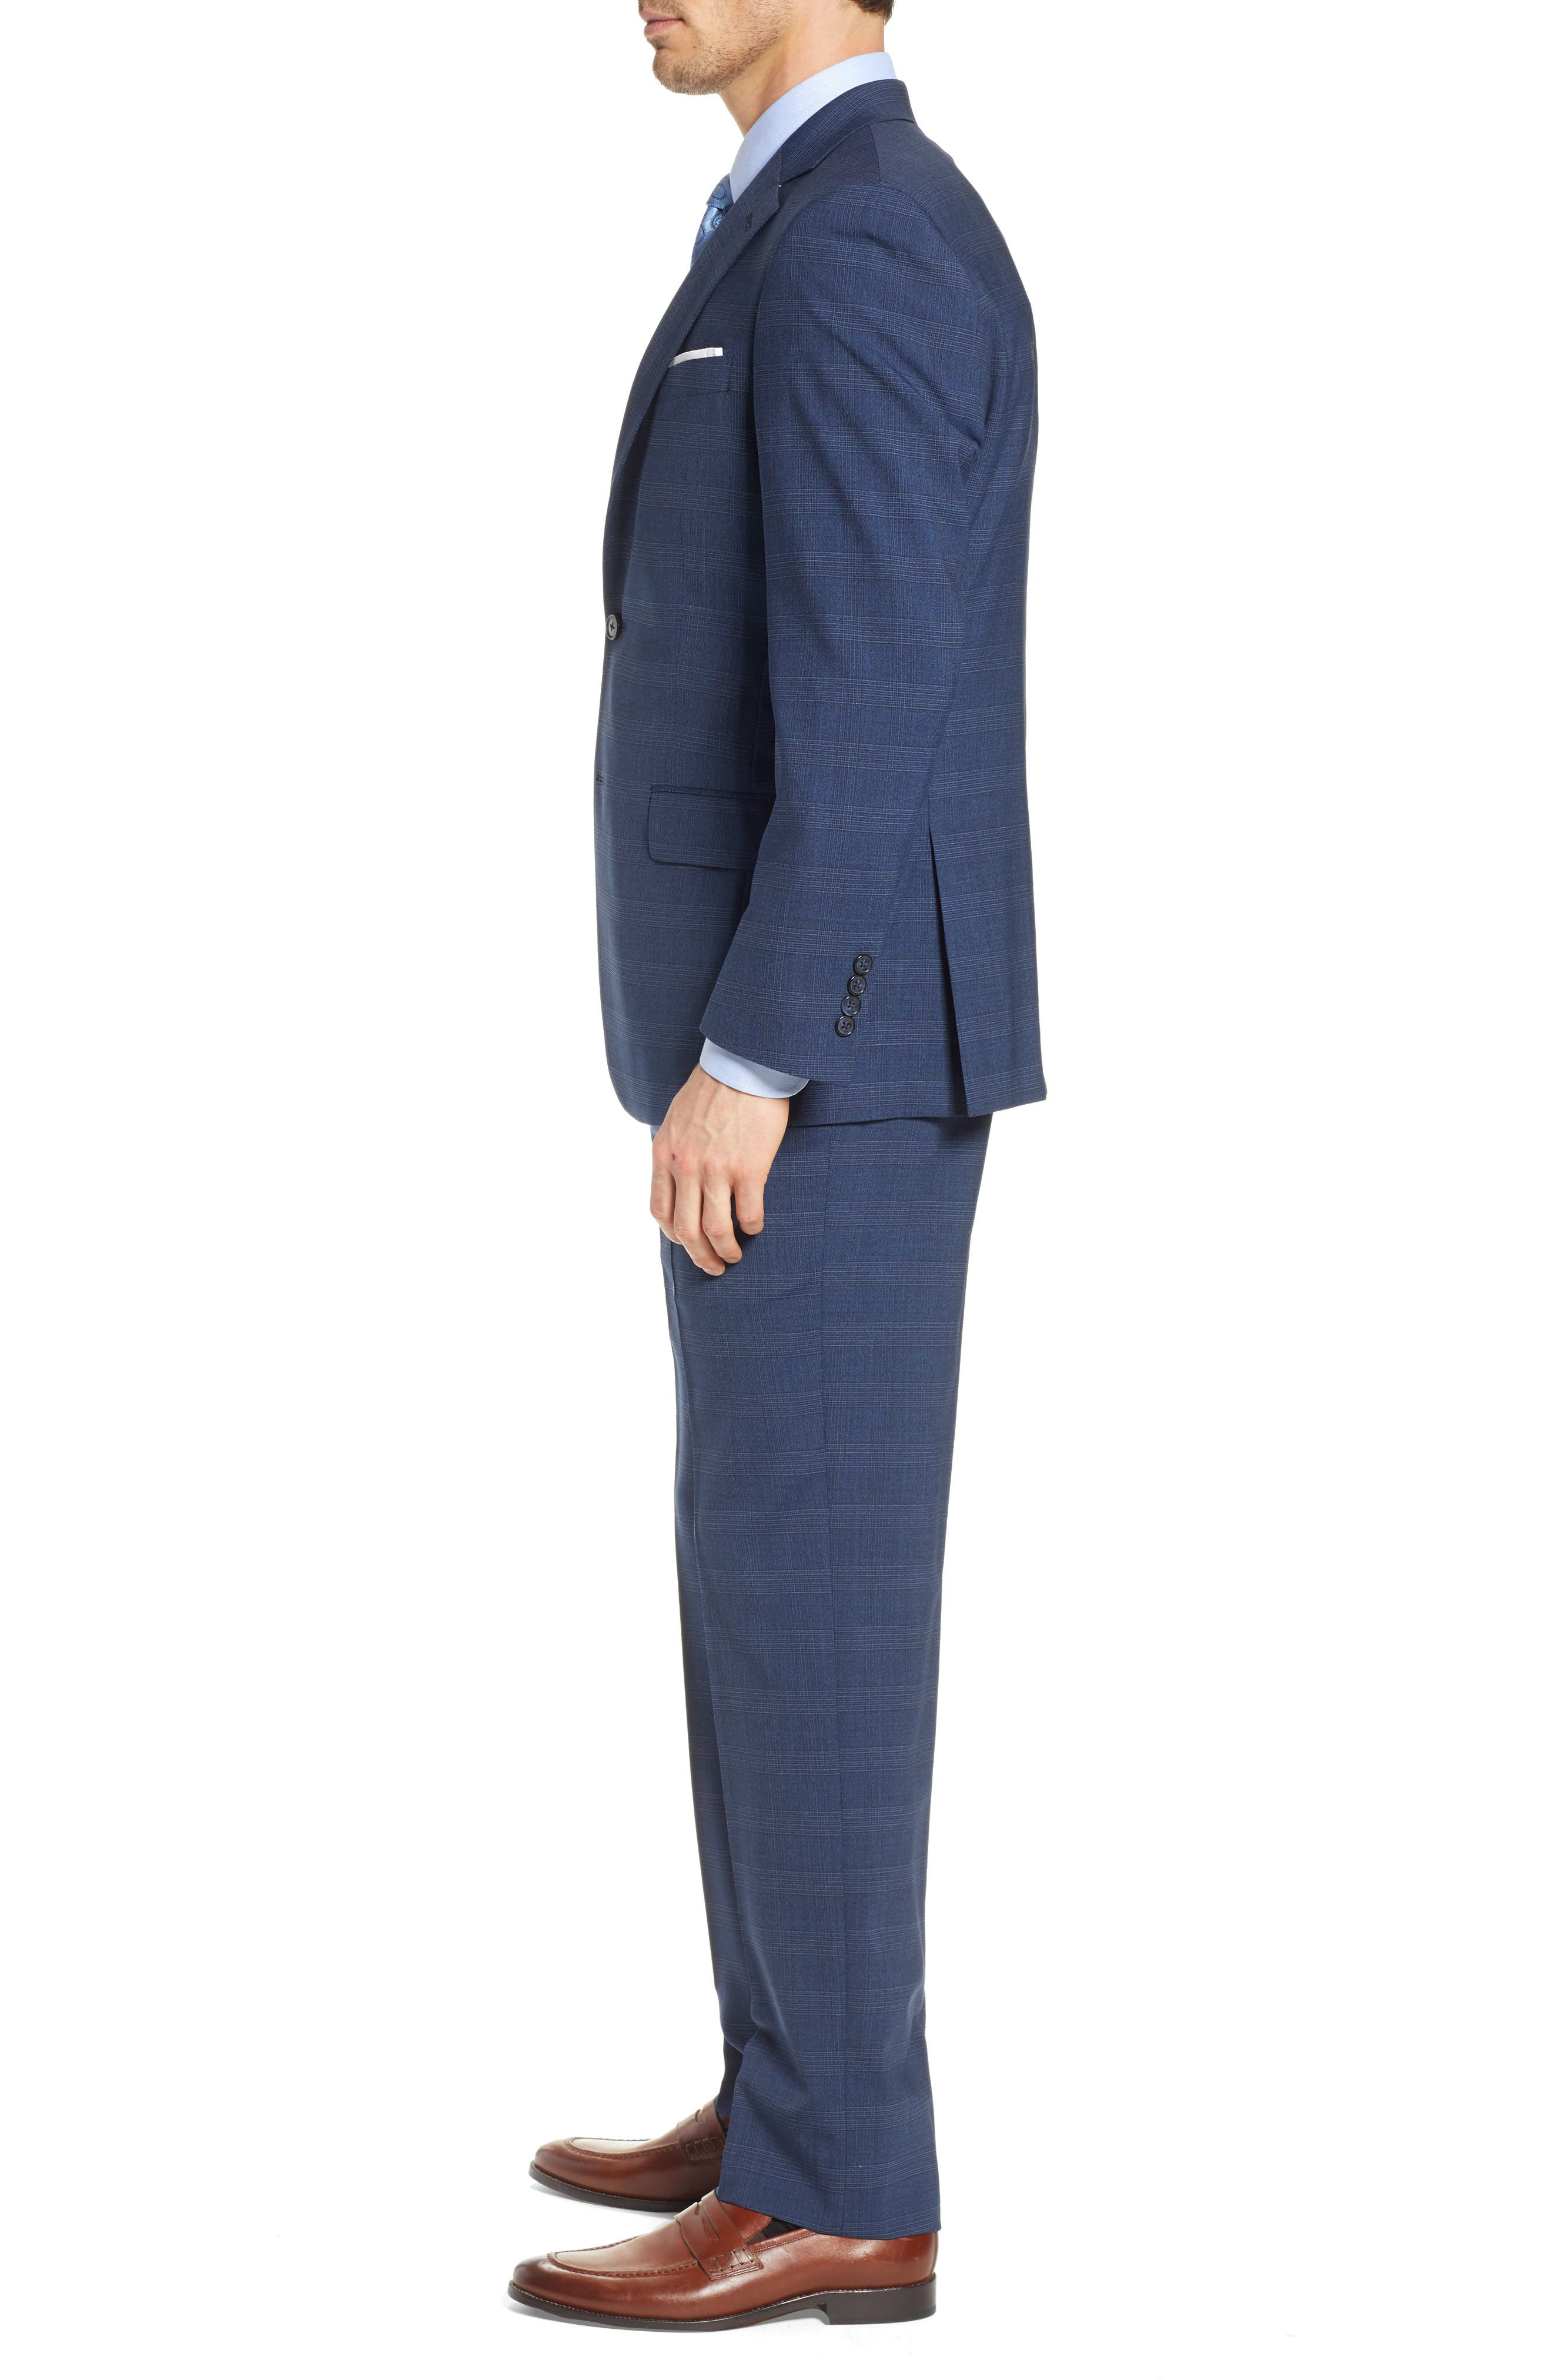 HART SCHAFFNER MARX, New York Classic Fit Plaid Wool Blend Suit, Alternate thumbnail 3, color, 401